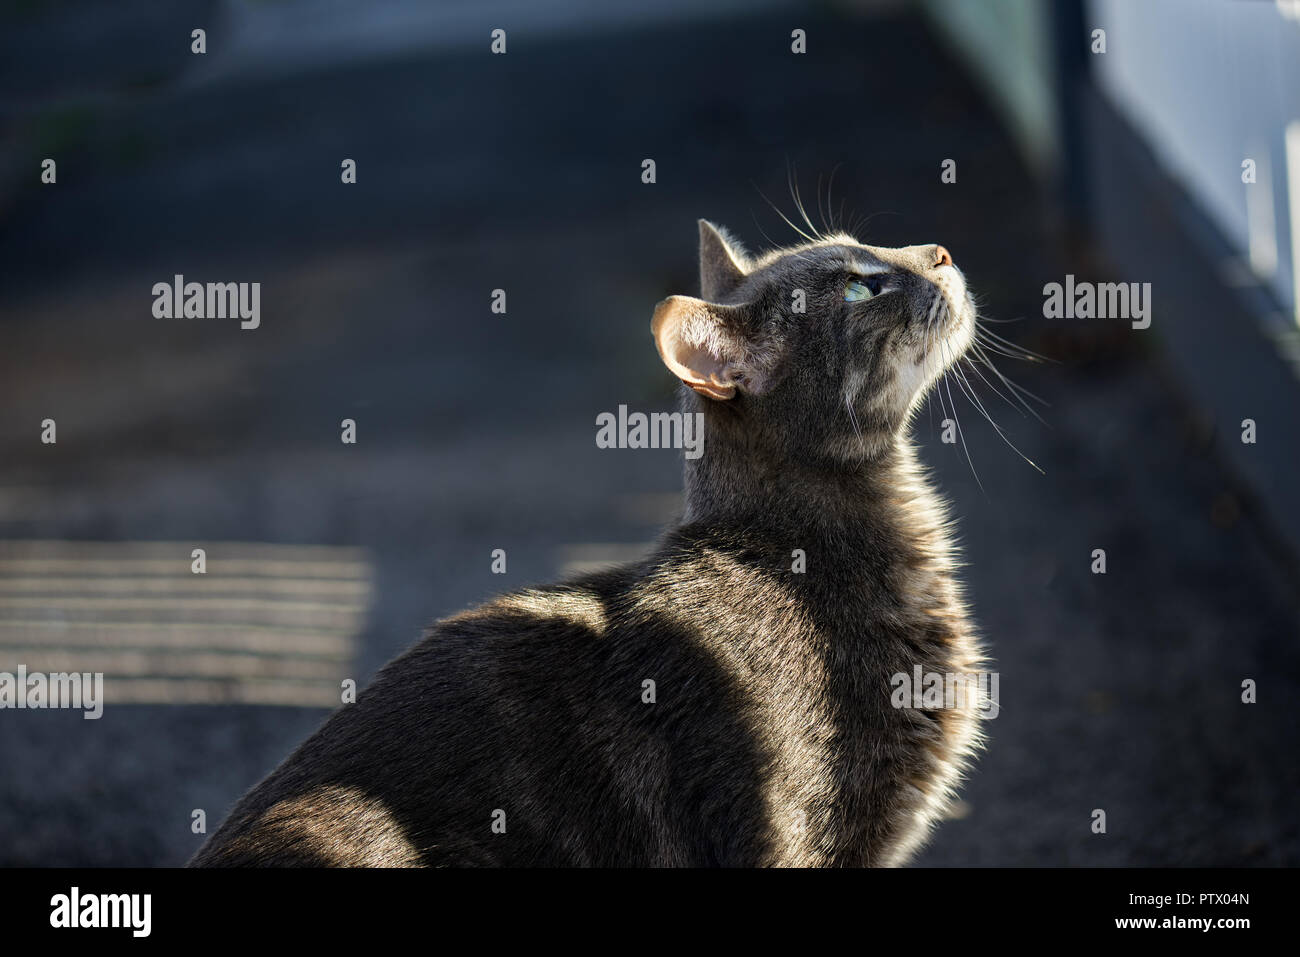 Grey cat about to jump a fence with lit by the low sun striped through a picked fence. - Stock Image